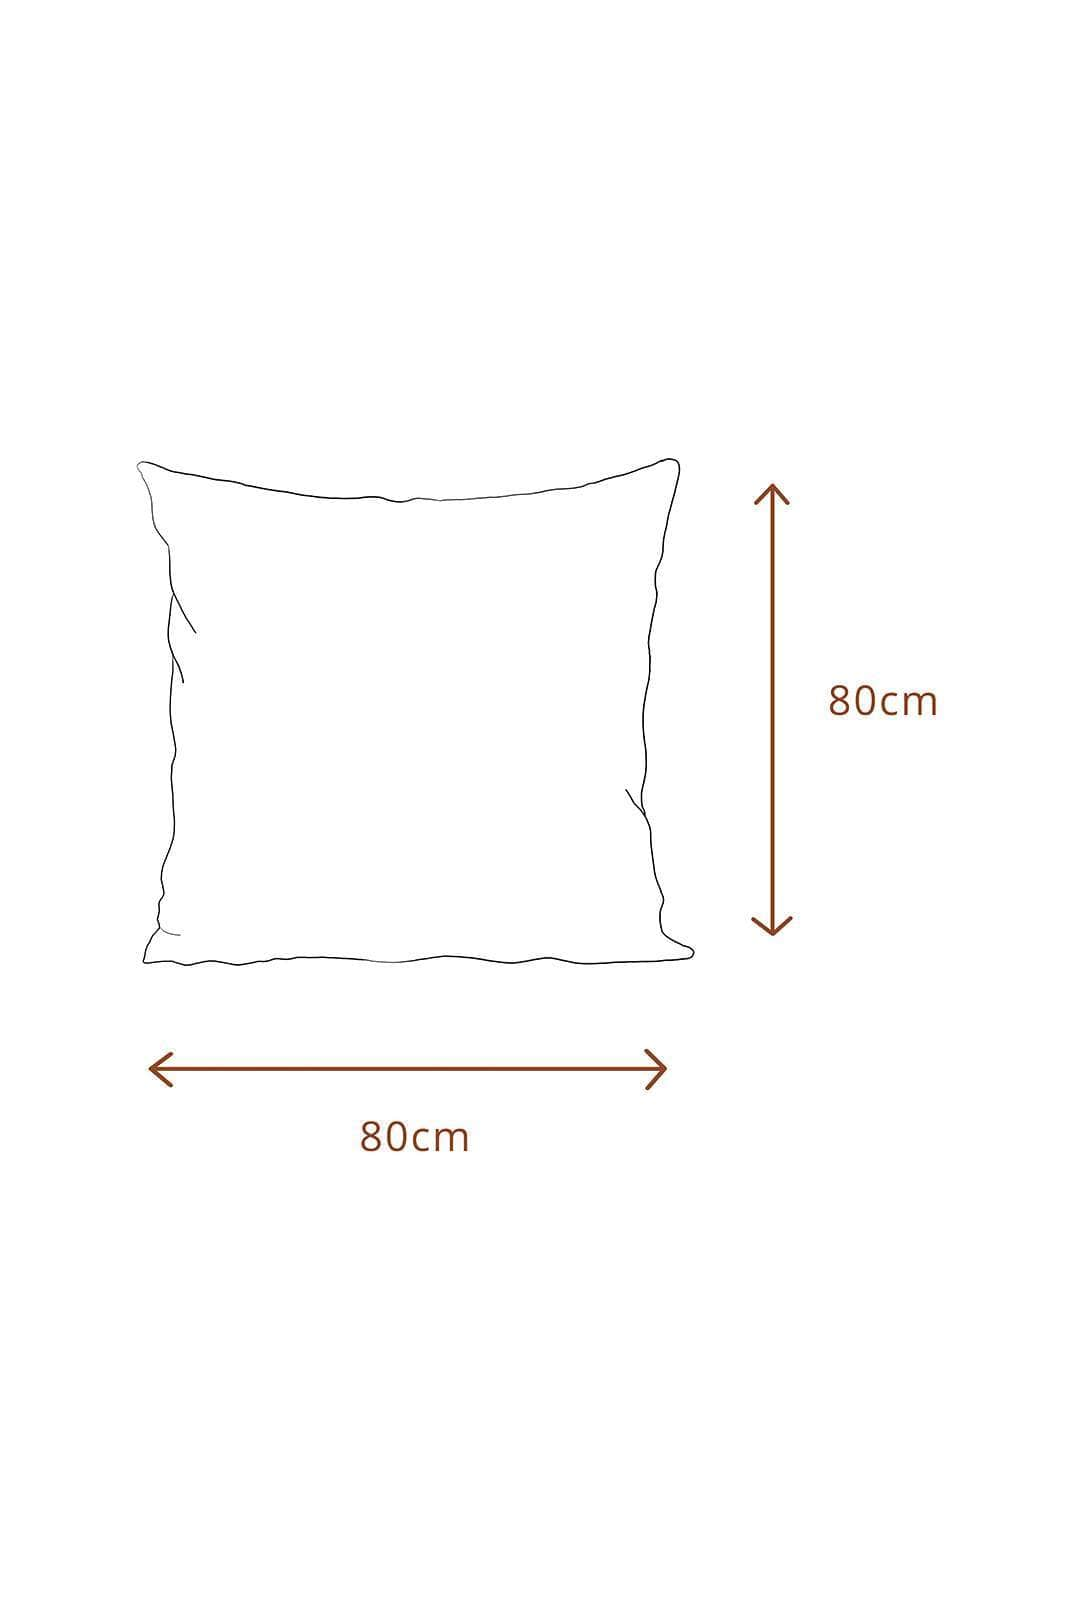 arkitaip Pillowslips 80 x 80cm / White The Ruffled Casita Linen Pillowslips Set in White